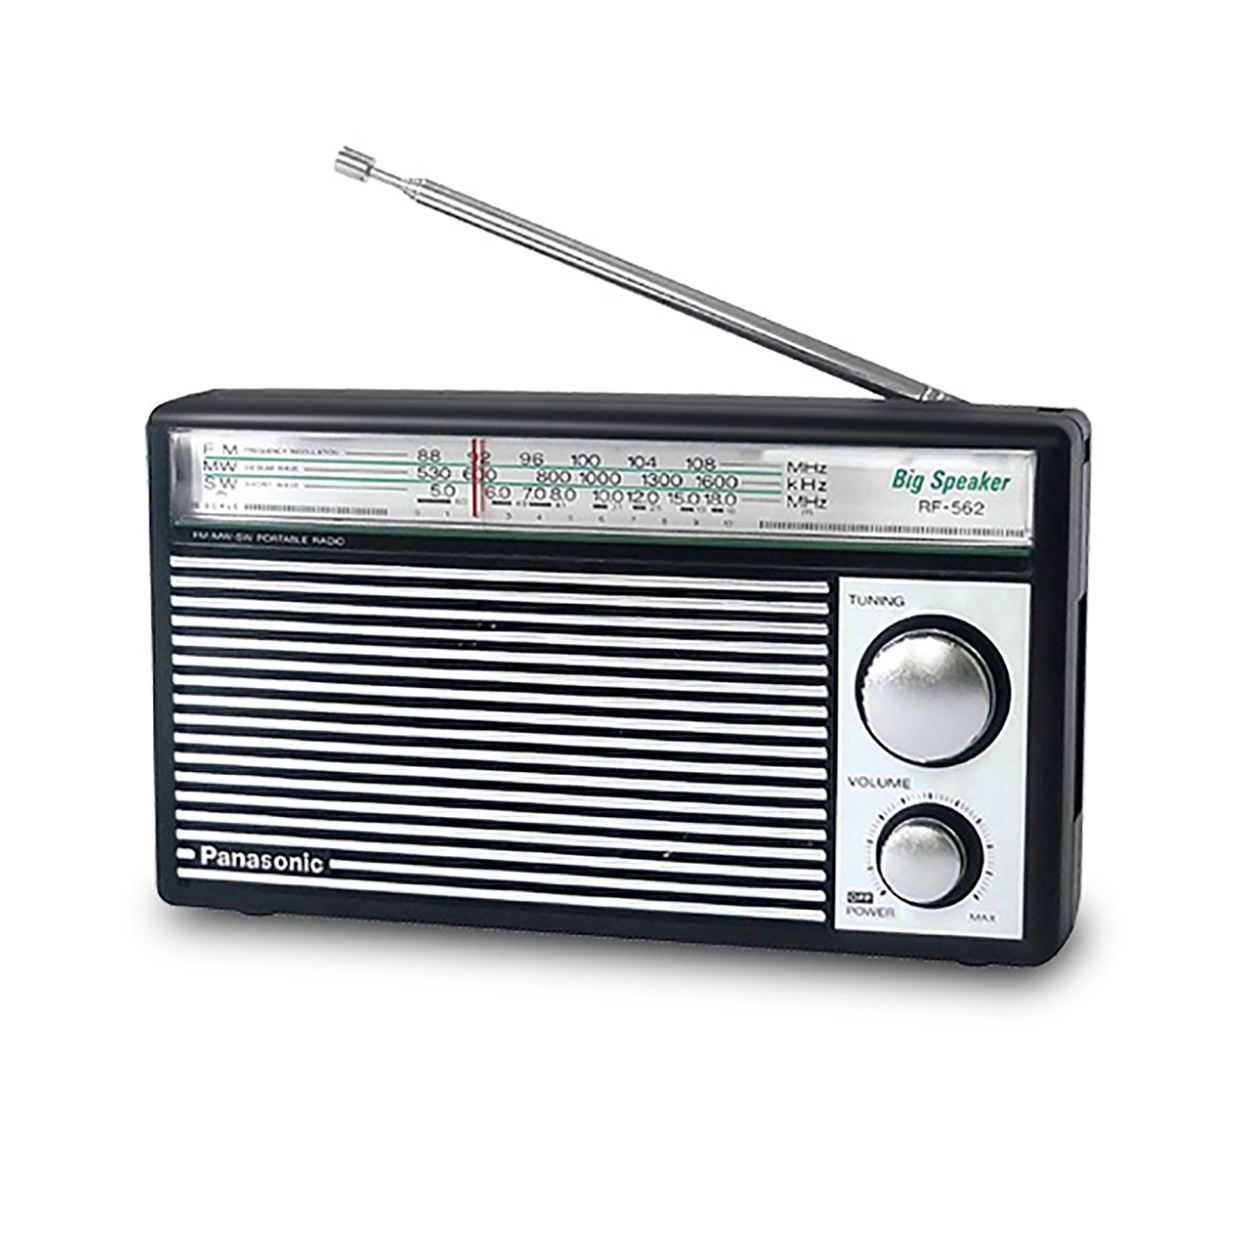 Panasonic Rf-562dd Fm/mw/sw 3-band Portable Radio